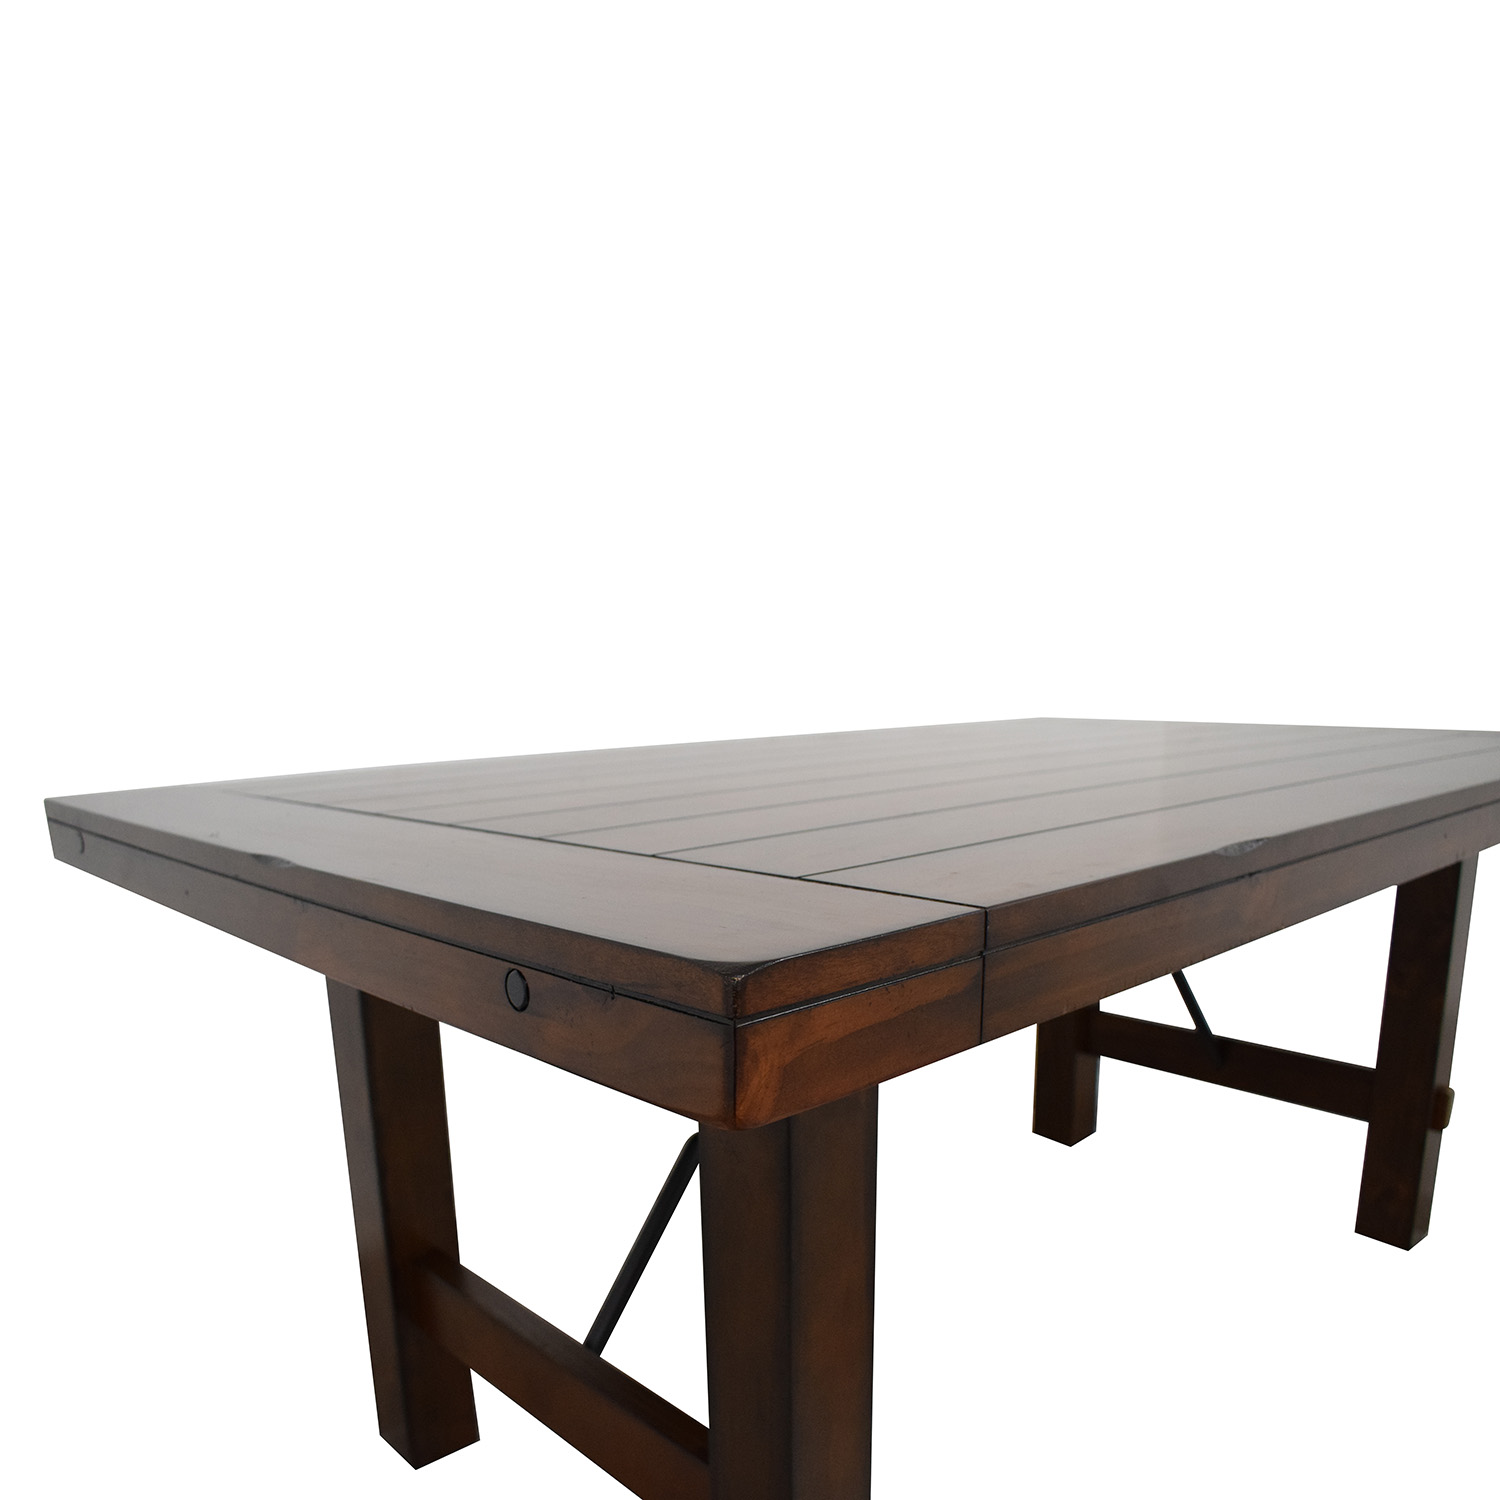 Wayfair Wayfair Dining Room Table second hand